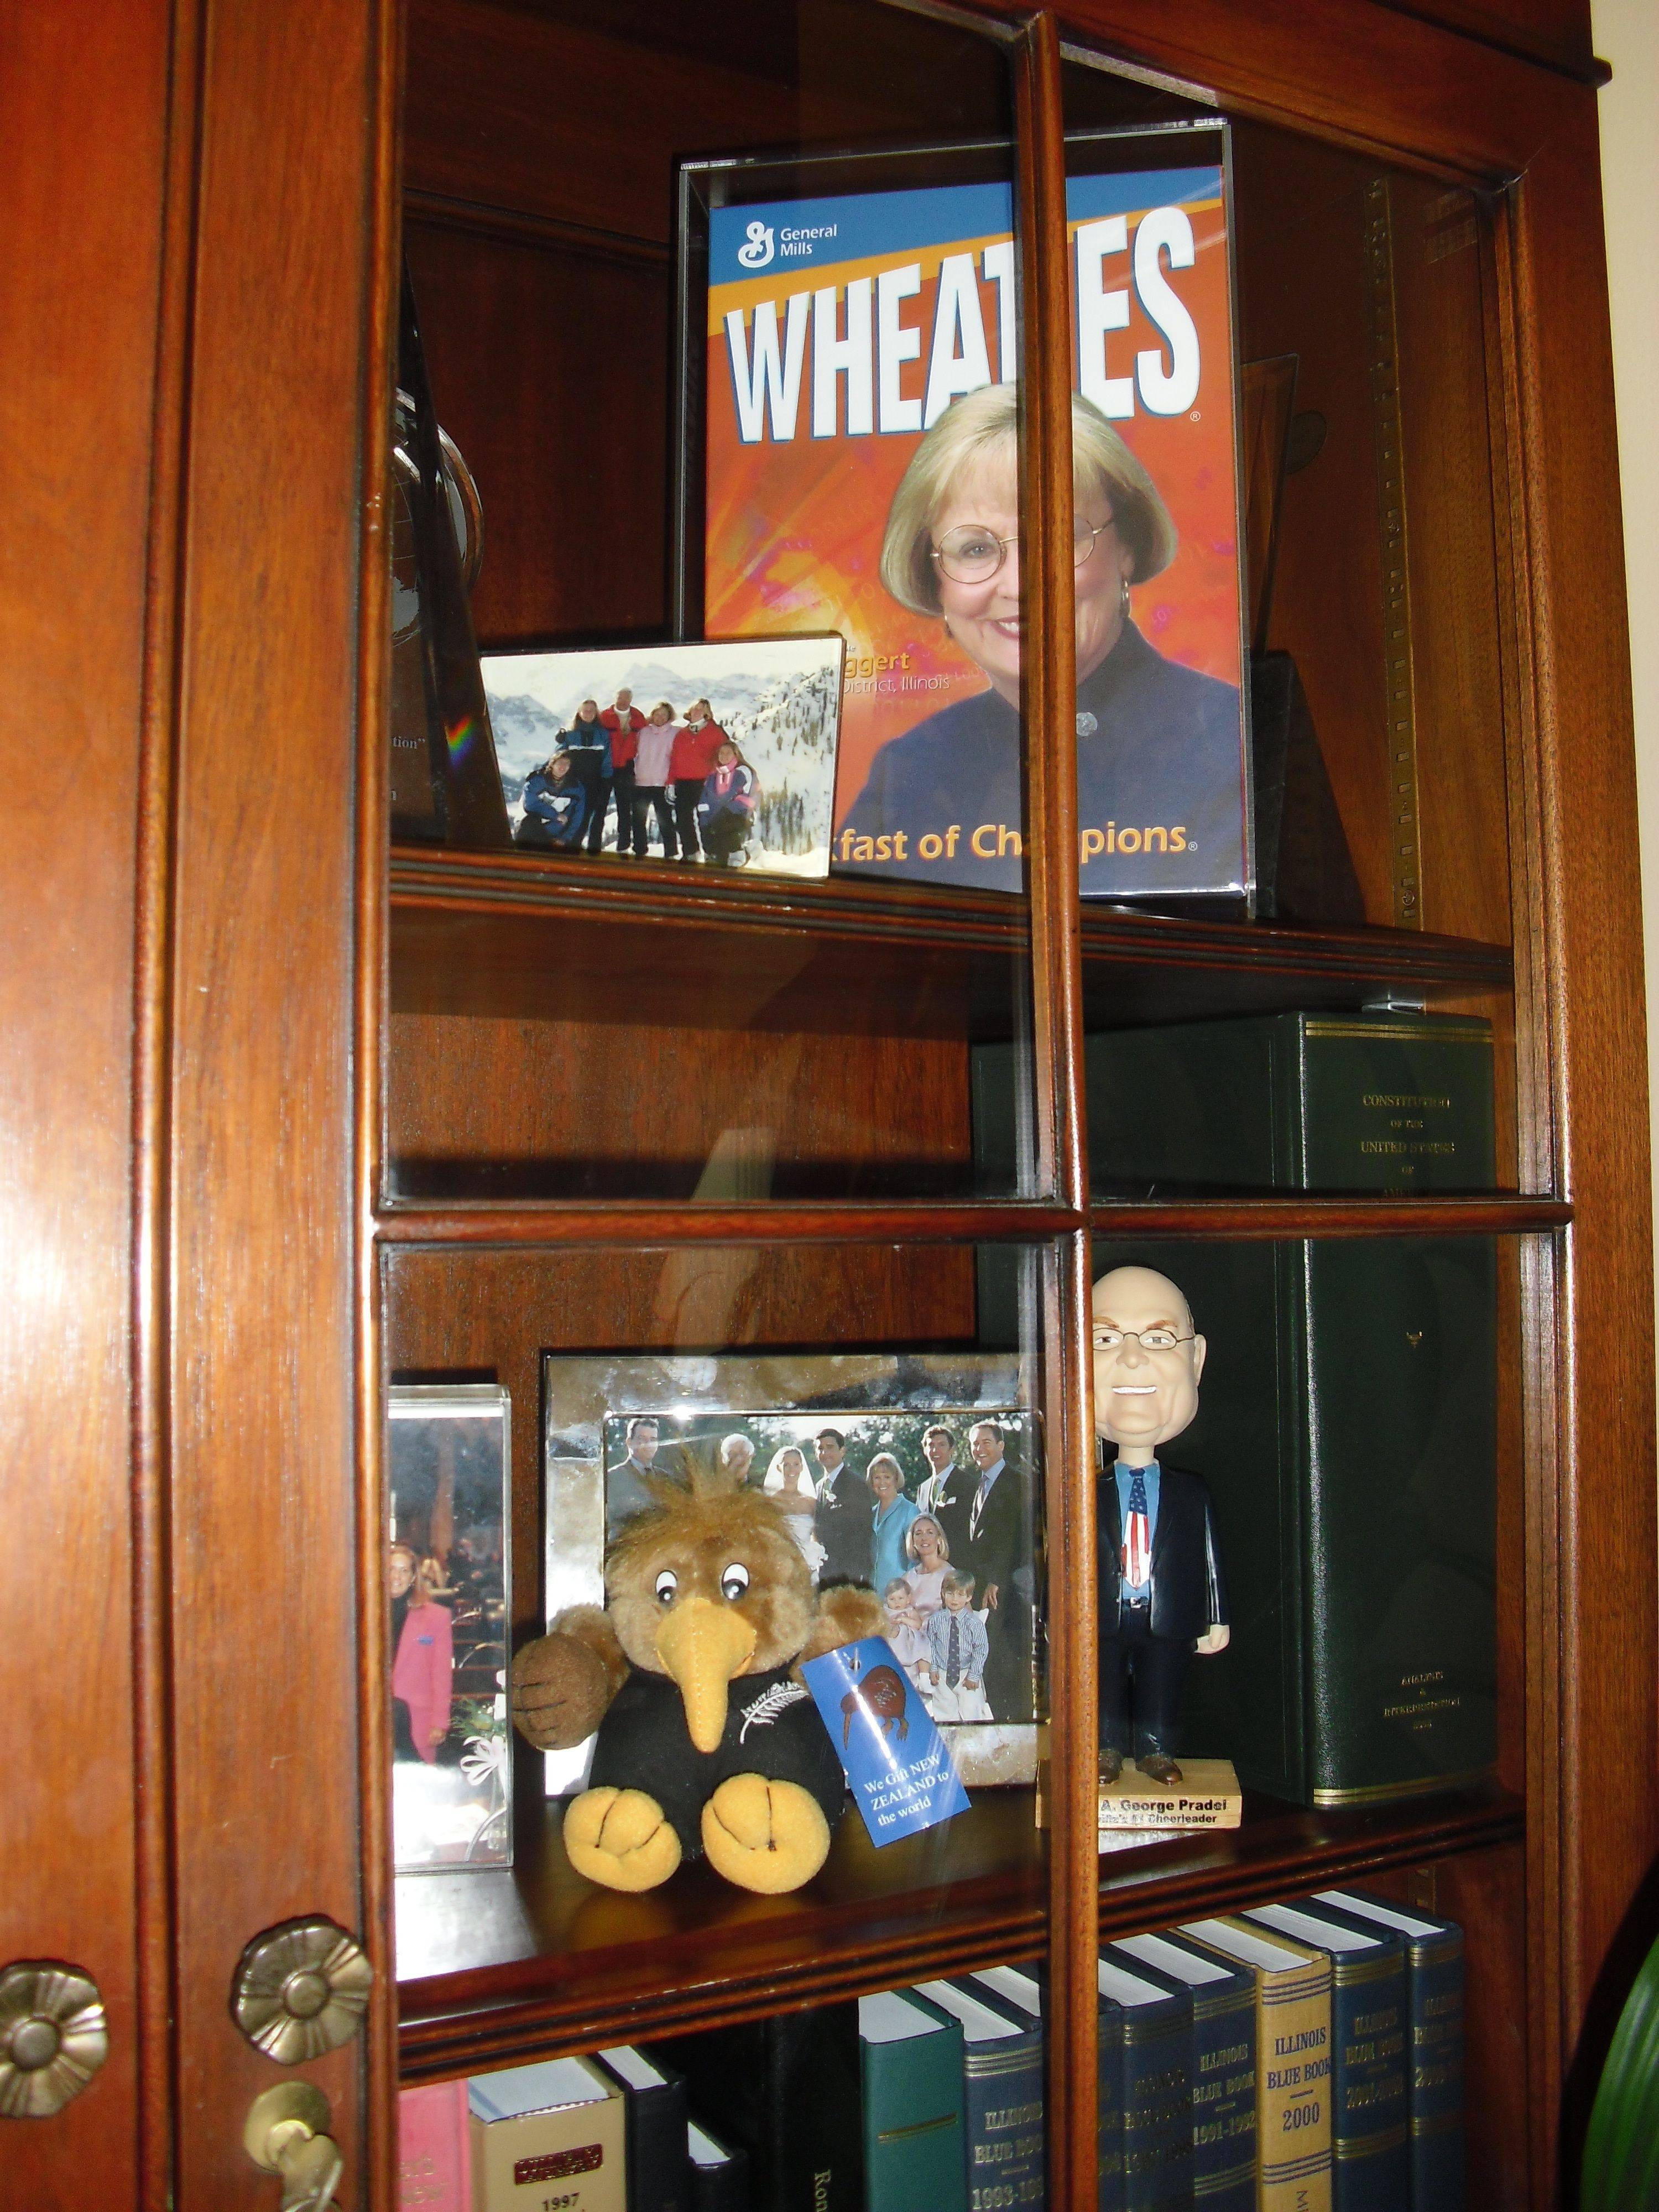 Congresswoman Judy Biggert keeps personal items in a cabinet in her office, including a personalized Wheaties box and a bobblehead doll of Naperville Mayor George Pradel.